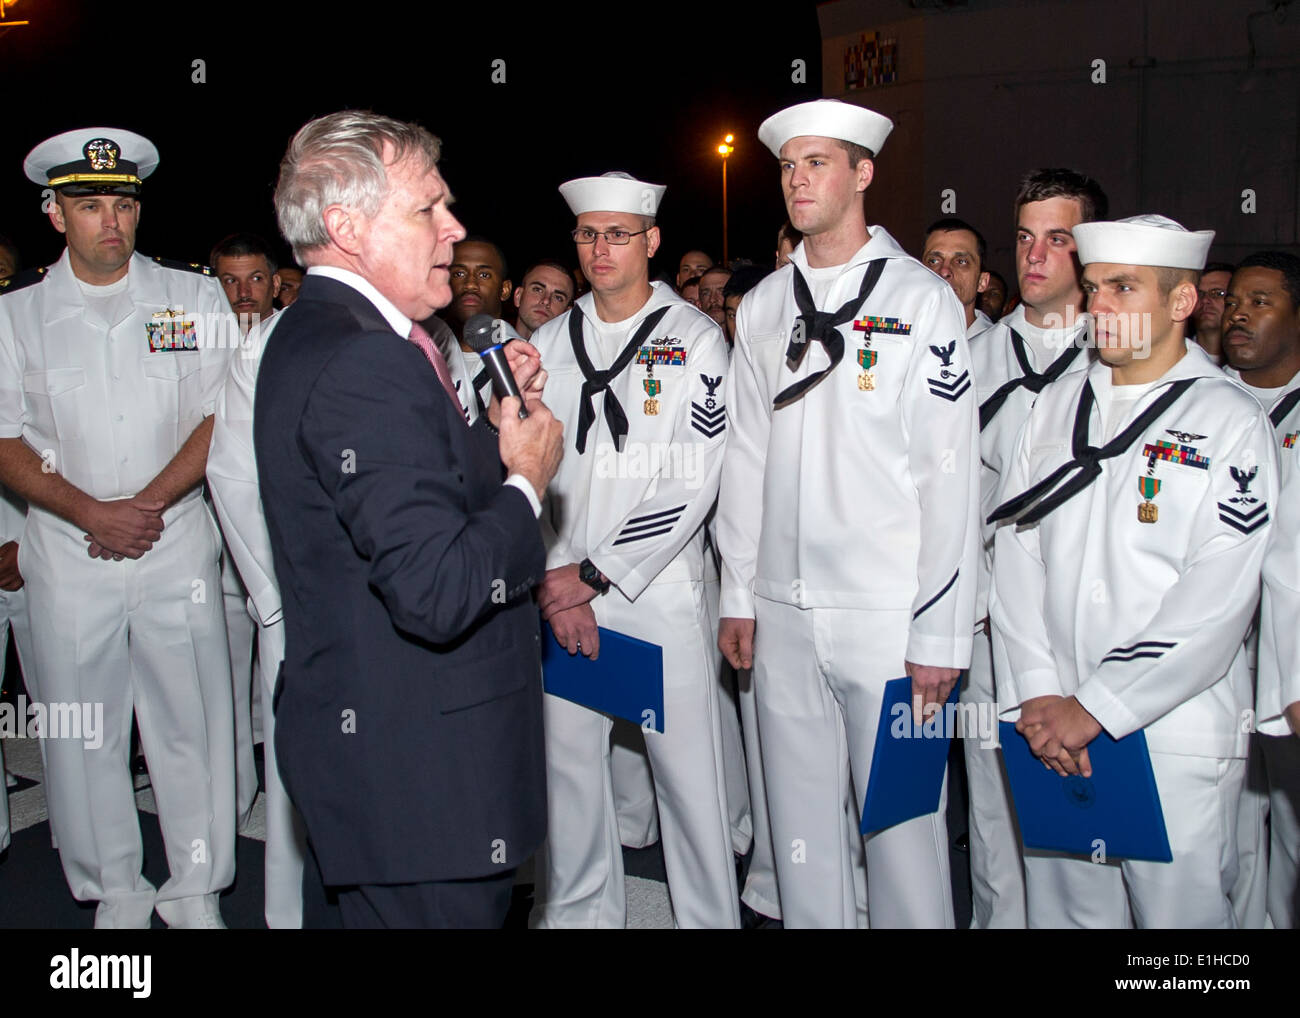 Secretary of the Navy Ray Mabus, second from left, speaks with U.S. Sailors during an all-hands call aboard the Stock Photo